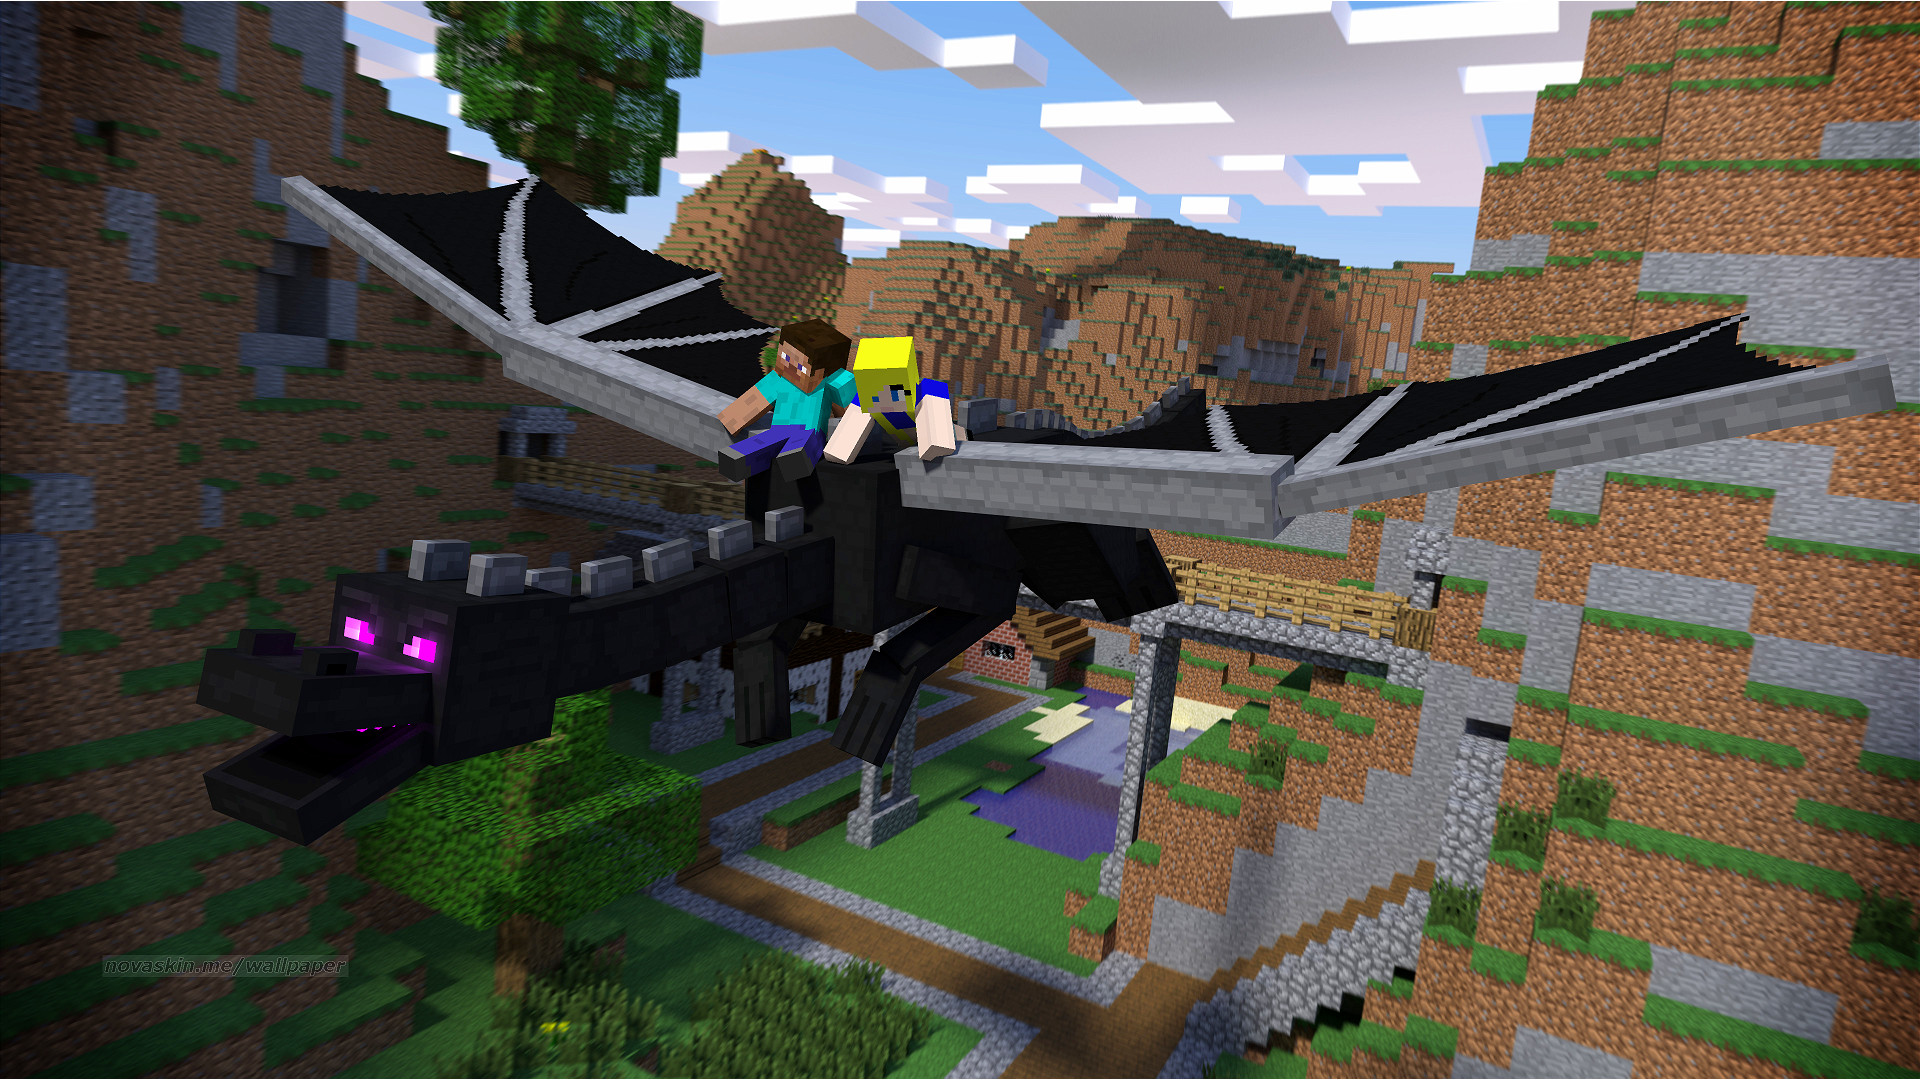 Res: 1920x1080, ... Steve and Violet Rideing Enderdragon. by Therubyminecart